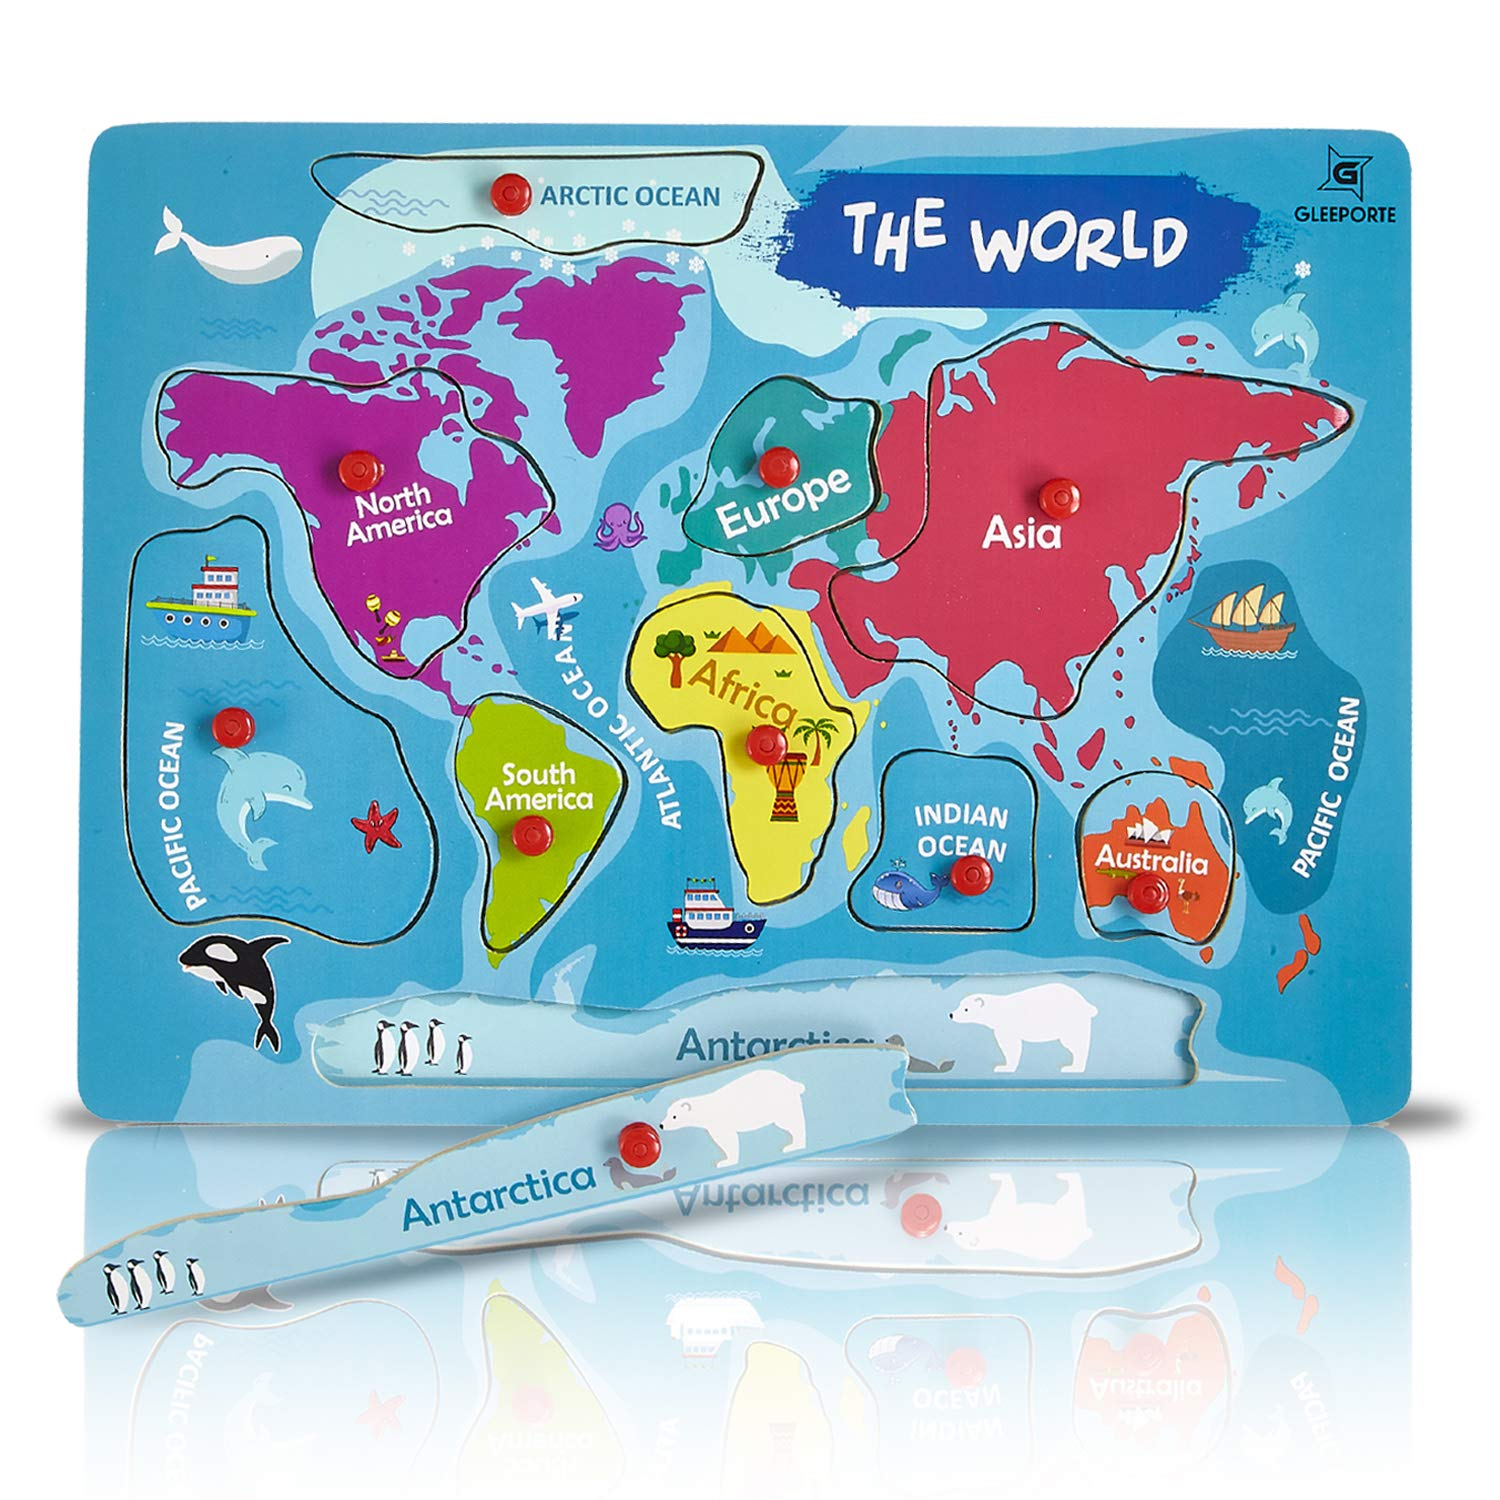 Gleeporte Wooden Peg Puzzle, World Map Theme - Learning Educational Pegged  Puzzle for Toddler & Kids - 7 Continents & 4 Oceans (11 pcs)